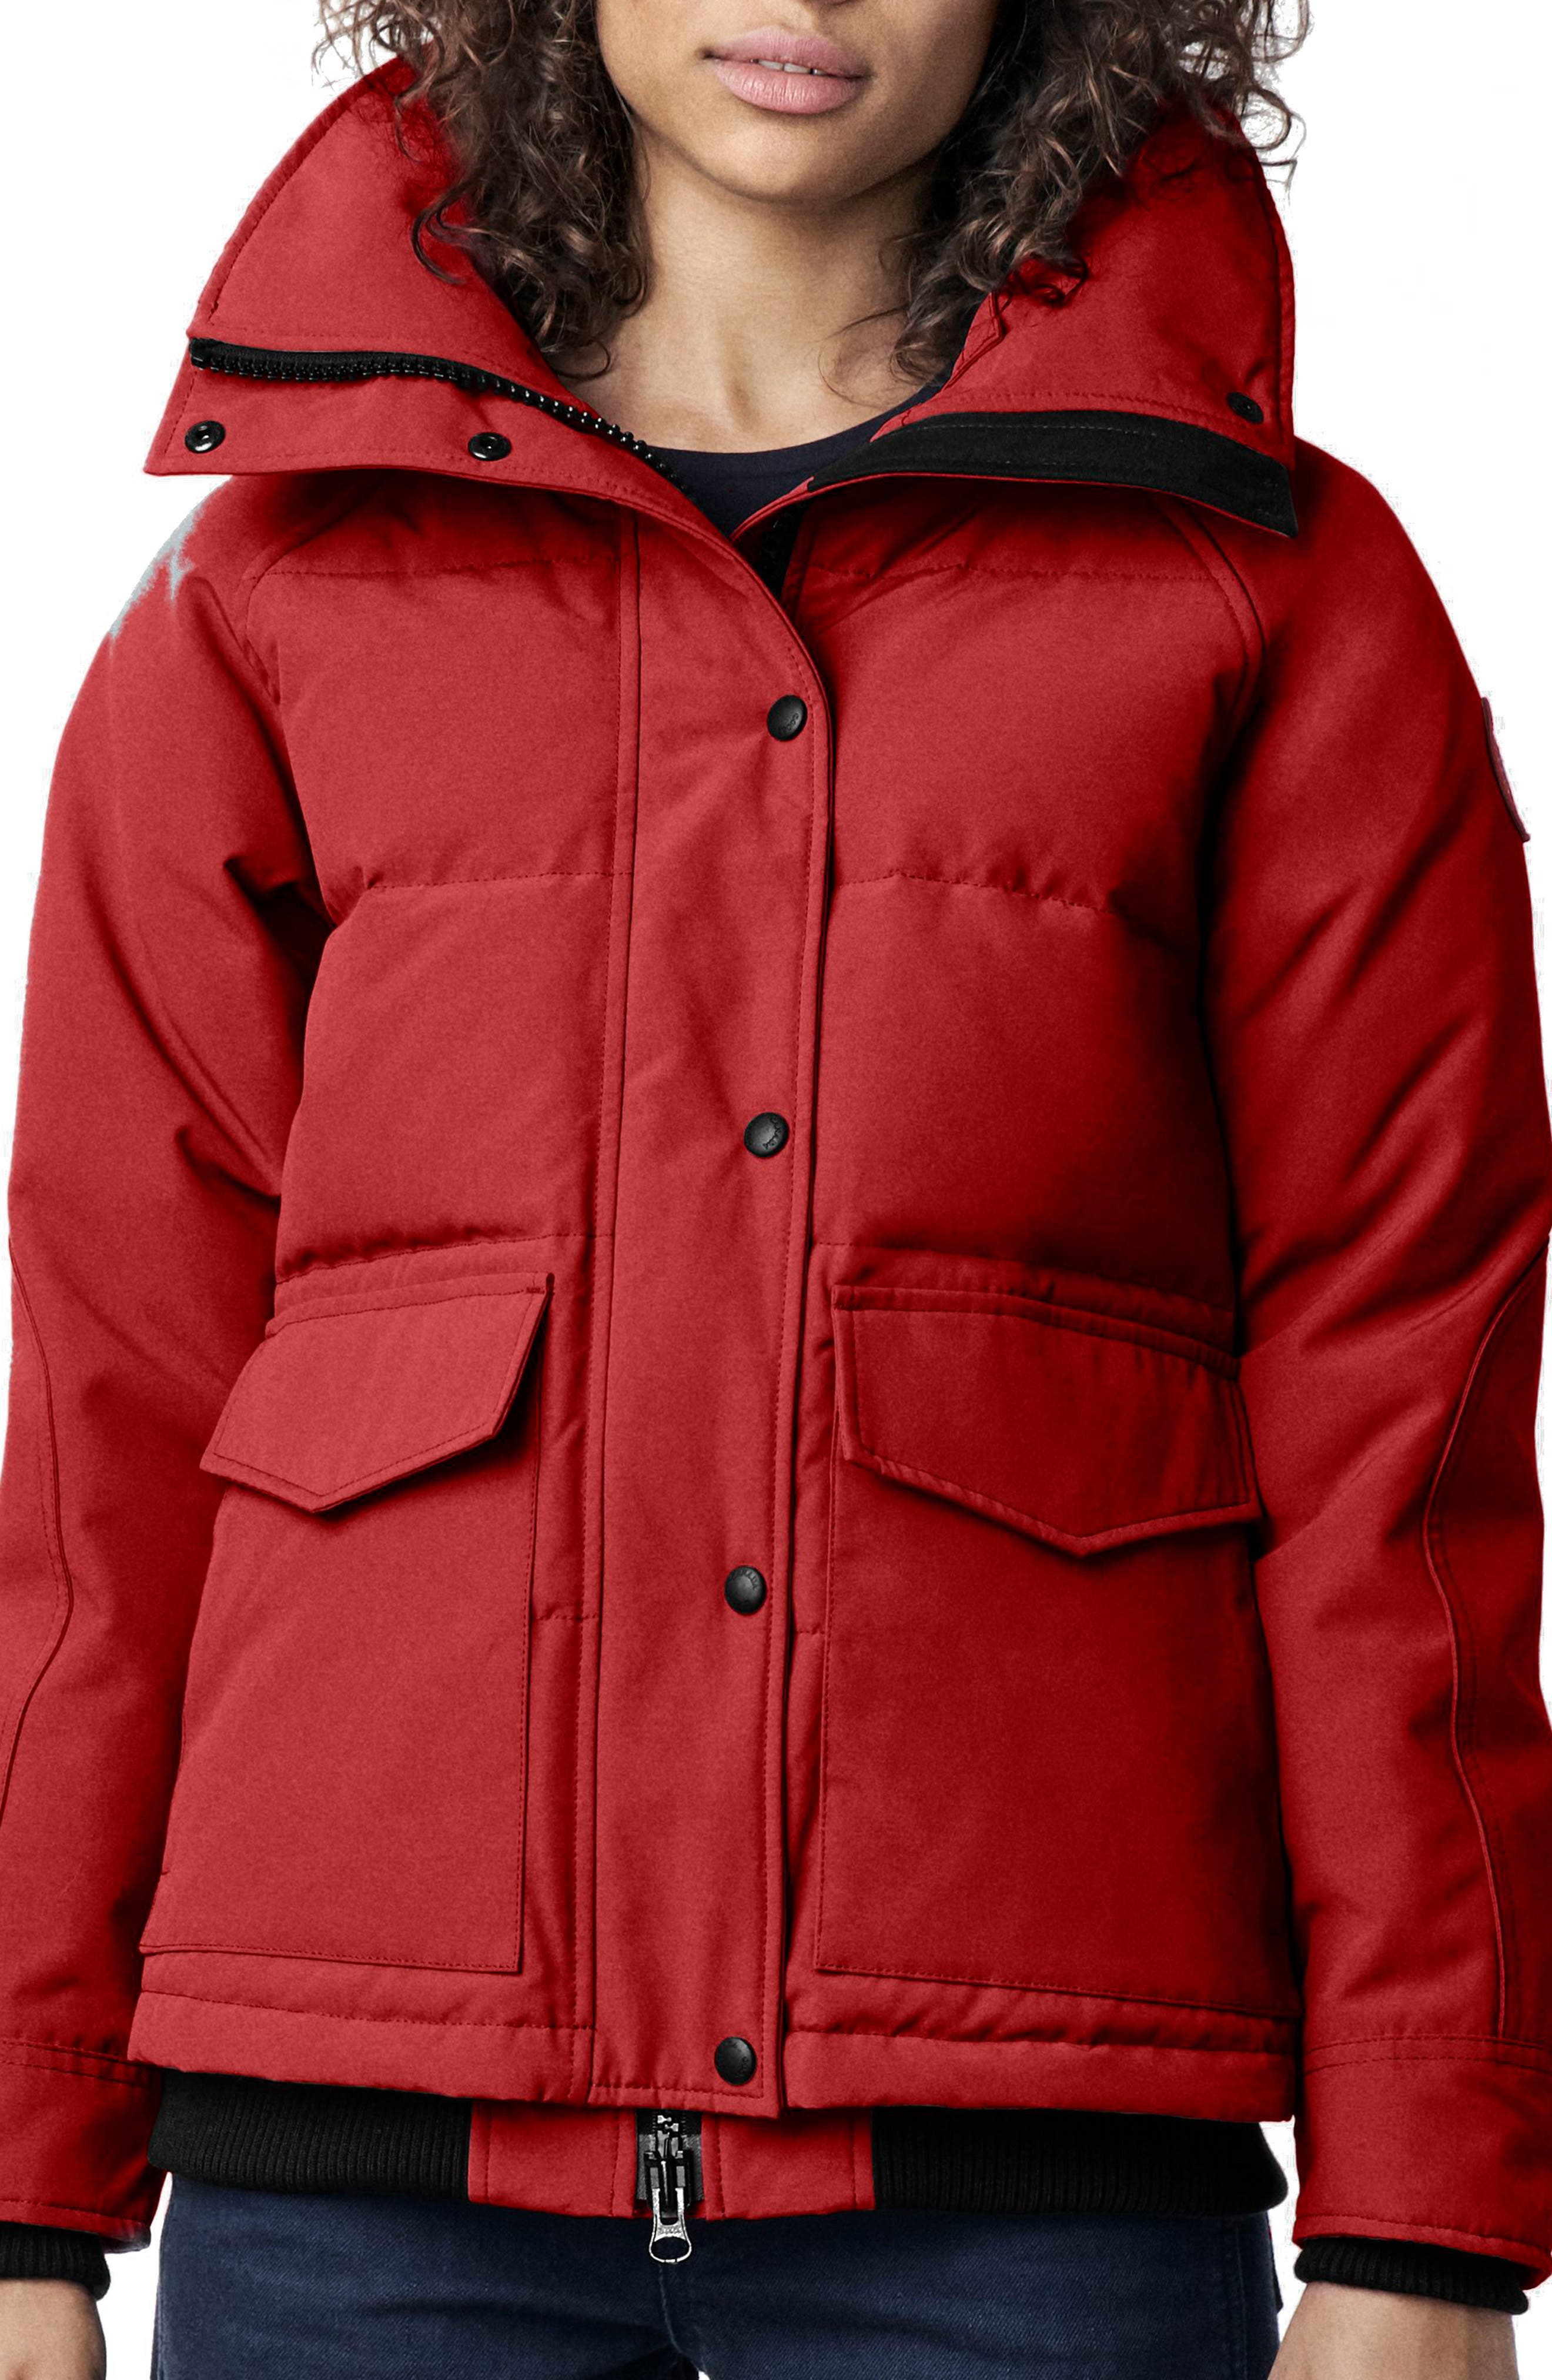 Canada Goose Deep Cove Arctic Tech Water Resistant 625 Fill Power Down Bomber Jacket, (14-16) - Red